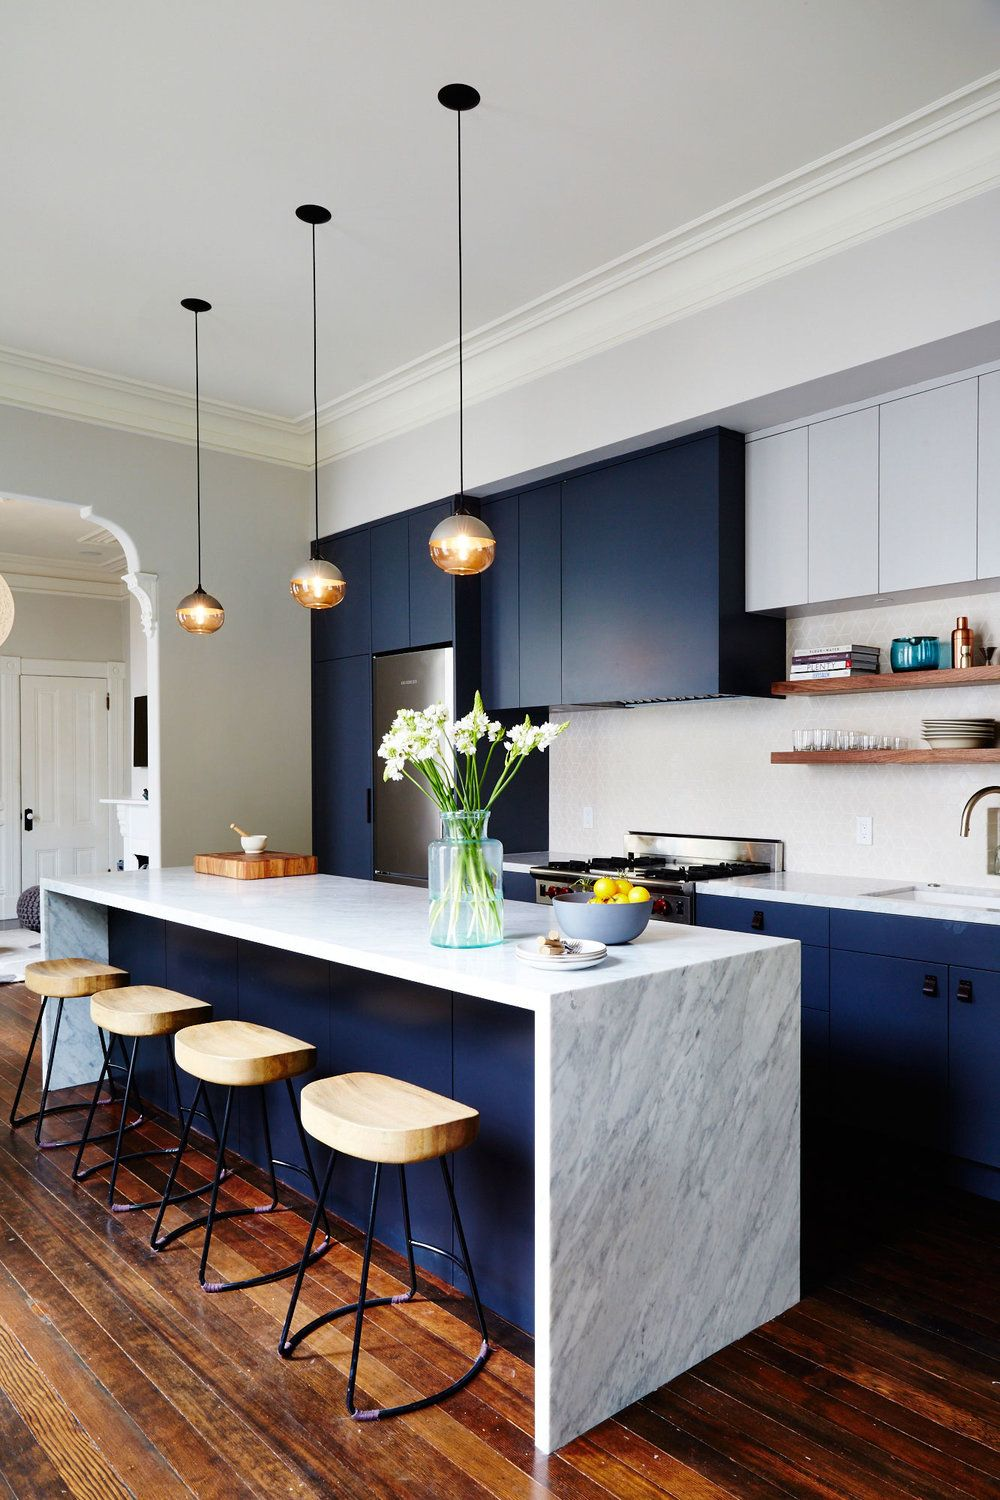 Modern kitchen colors Small Image House Beautiful 14 Best Kitchen Paint Colors Ideas For Popular Kitchen Colors